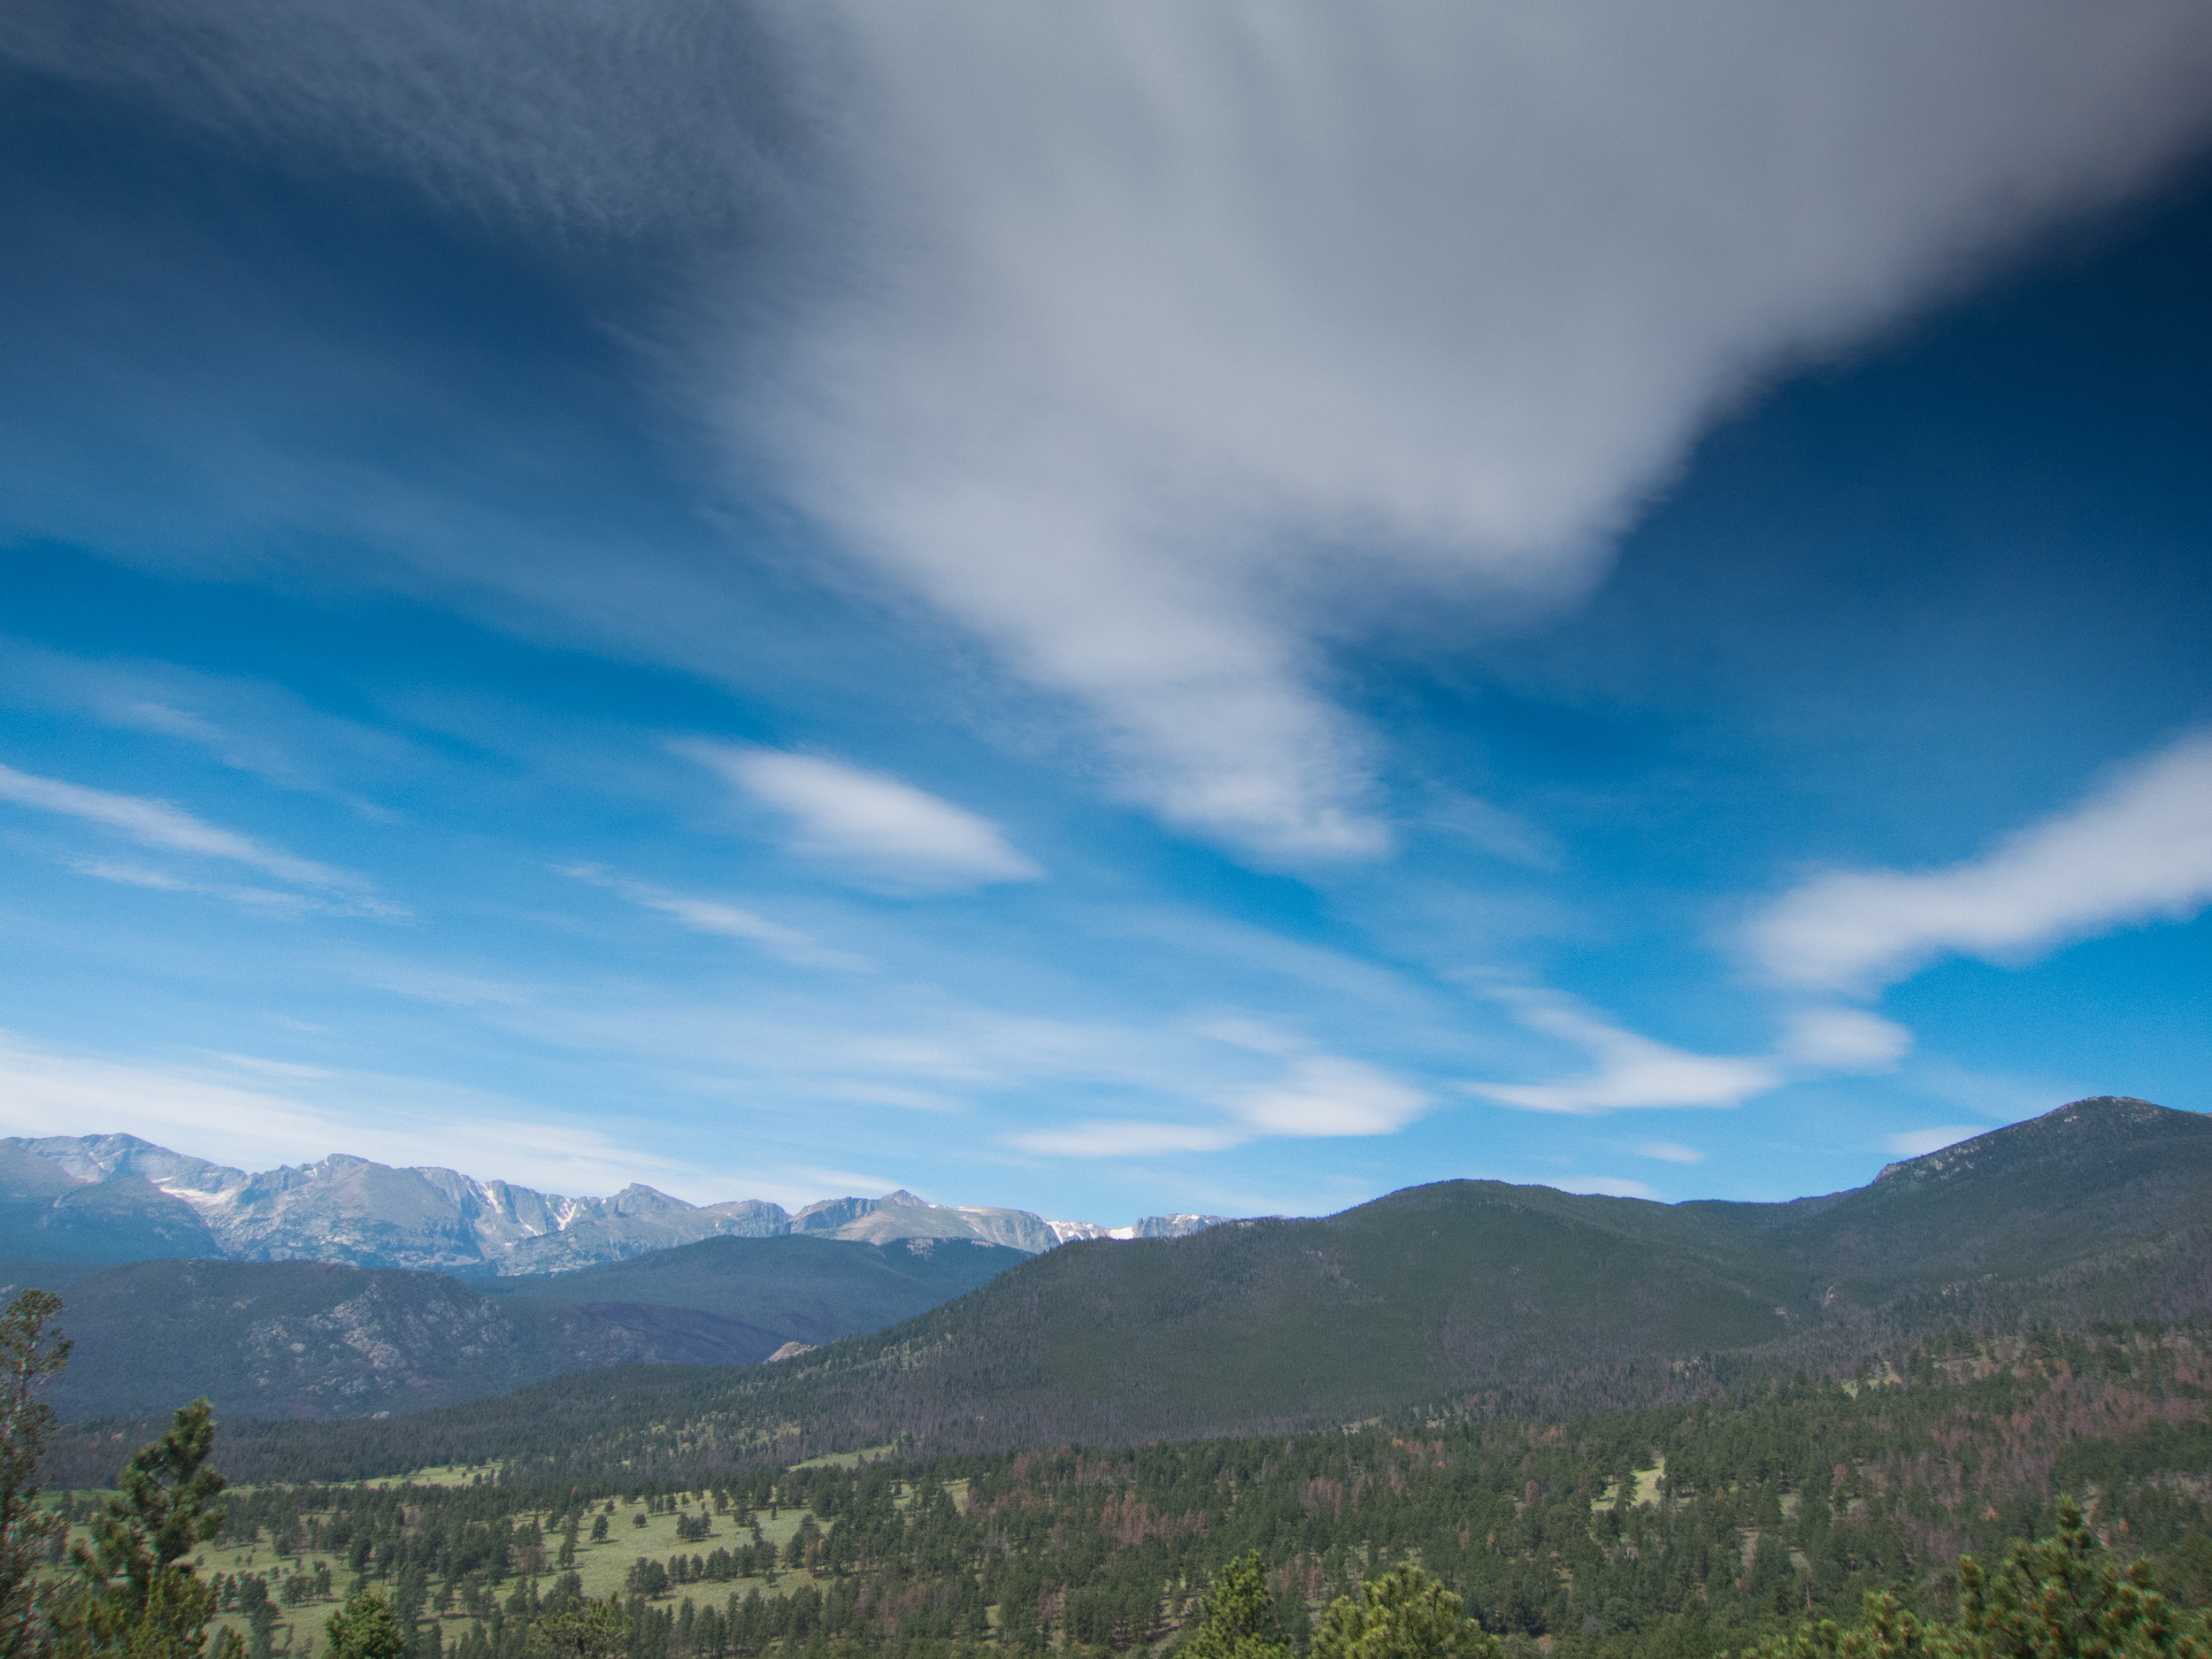 Vista of the area where the headwaters of the Colorado River begin in Rocky Mountain Nation Park, Colorado.